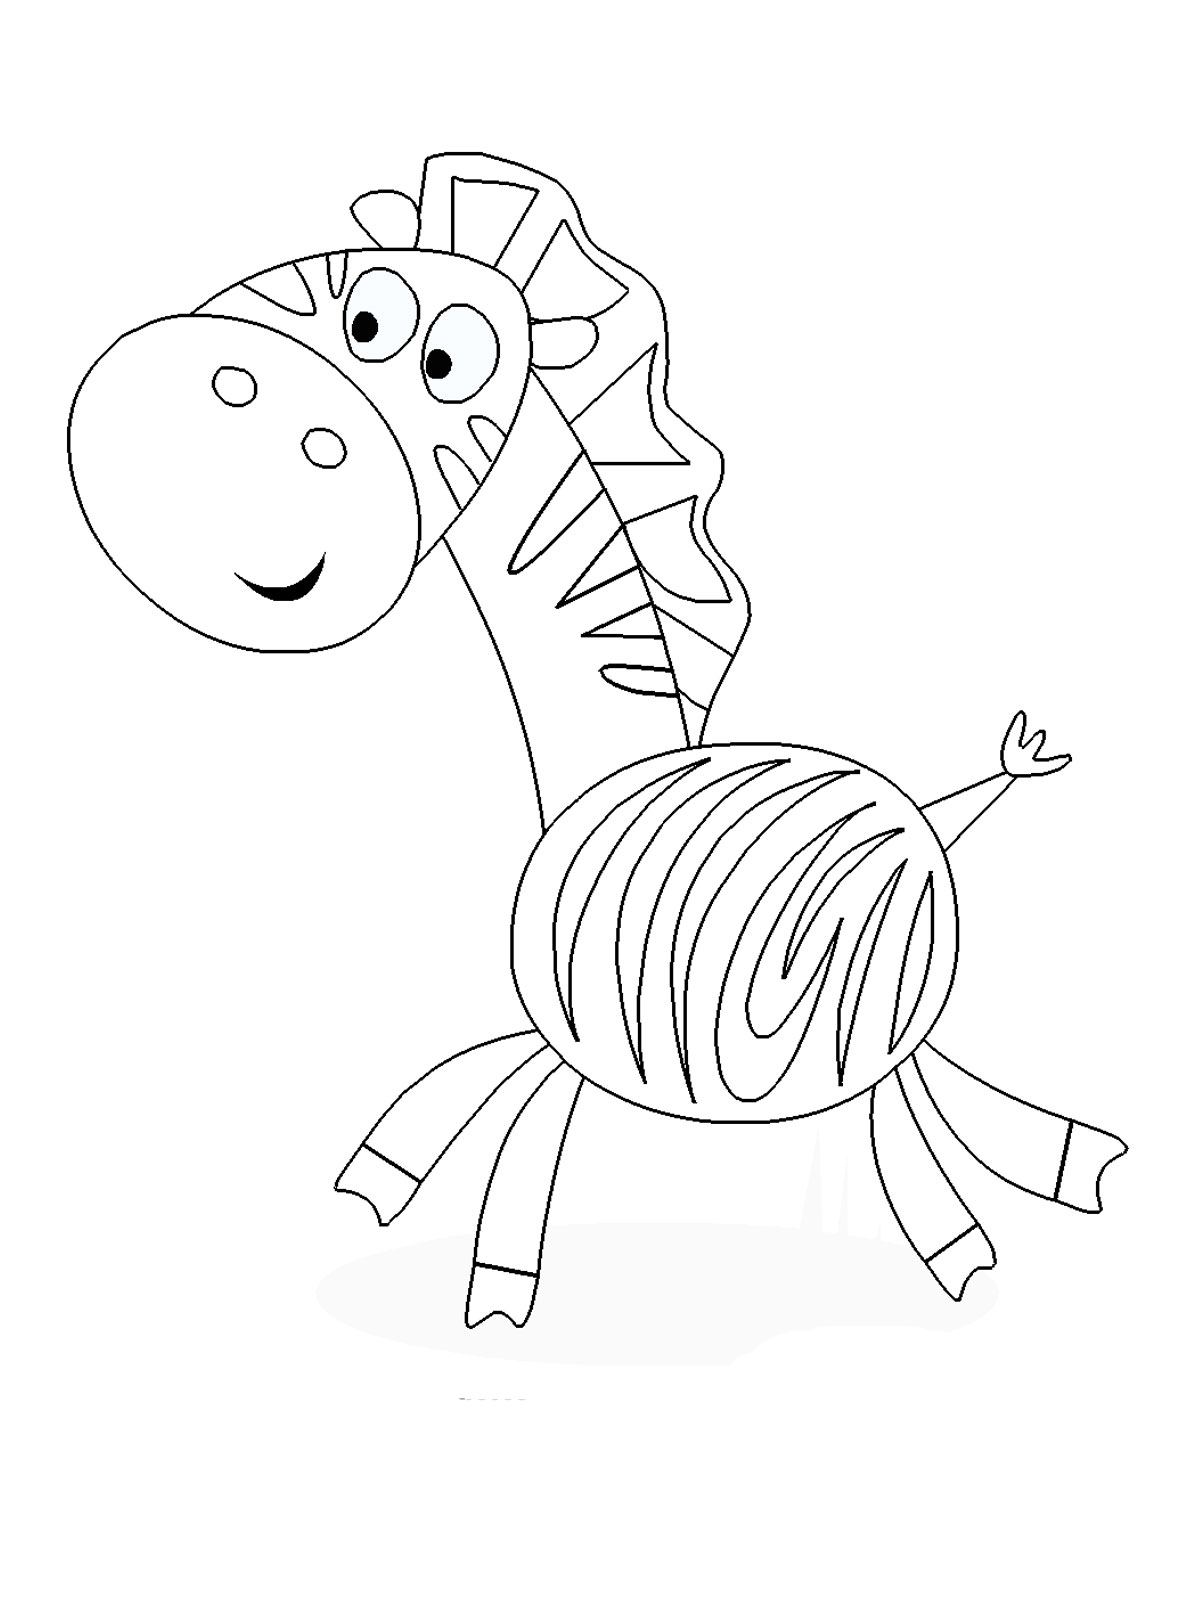 childrens coloring pages colouring pages abacus kids academy alberton day childrens pages coloring